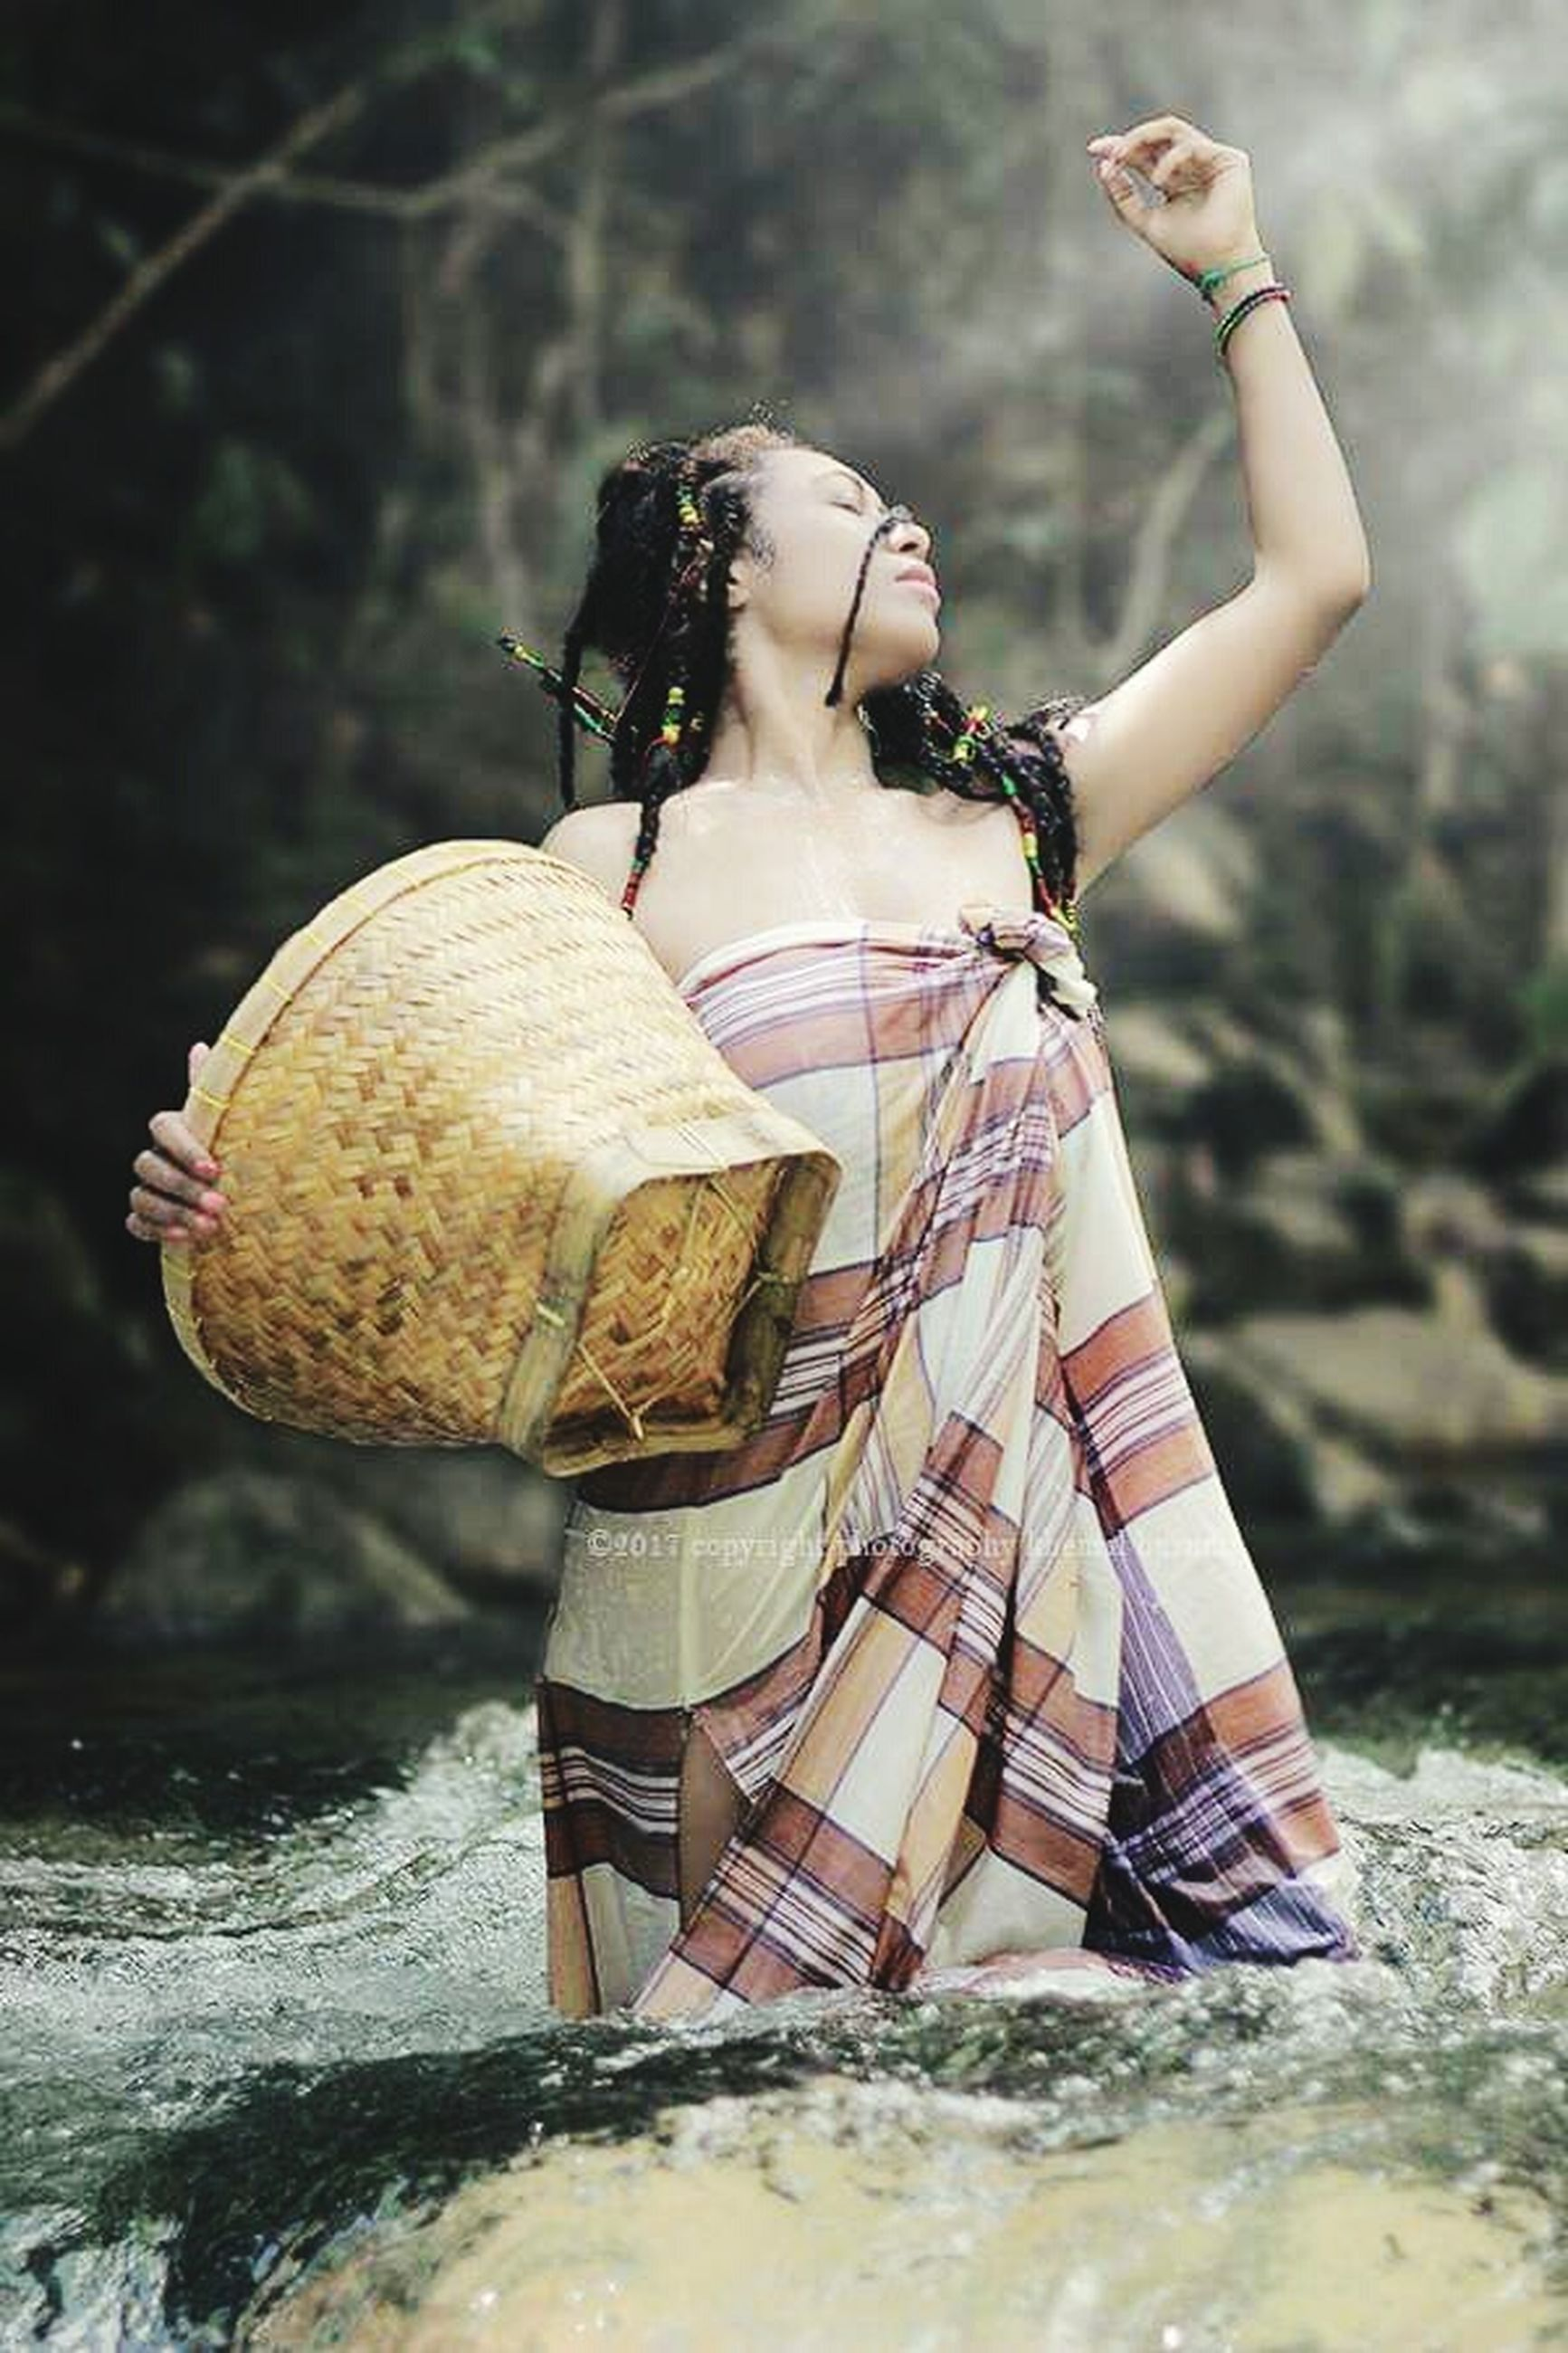 one person, full length, real people, young adult, water, lifestyles, adult, women, day, nature, standing, holding, leisure activity, young women, casual clothing, focus on foreground, happiness, human arm, outdoors, beautiful woman, arms raised, hairstyle